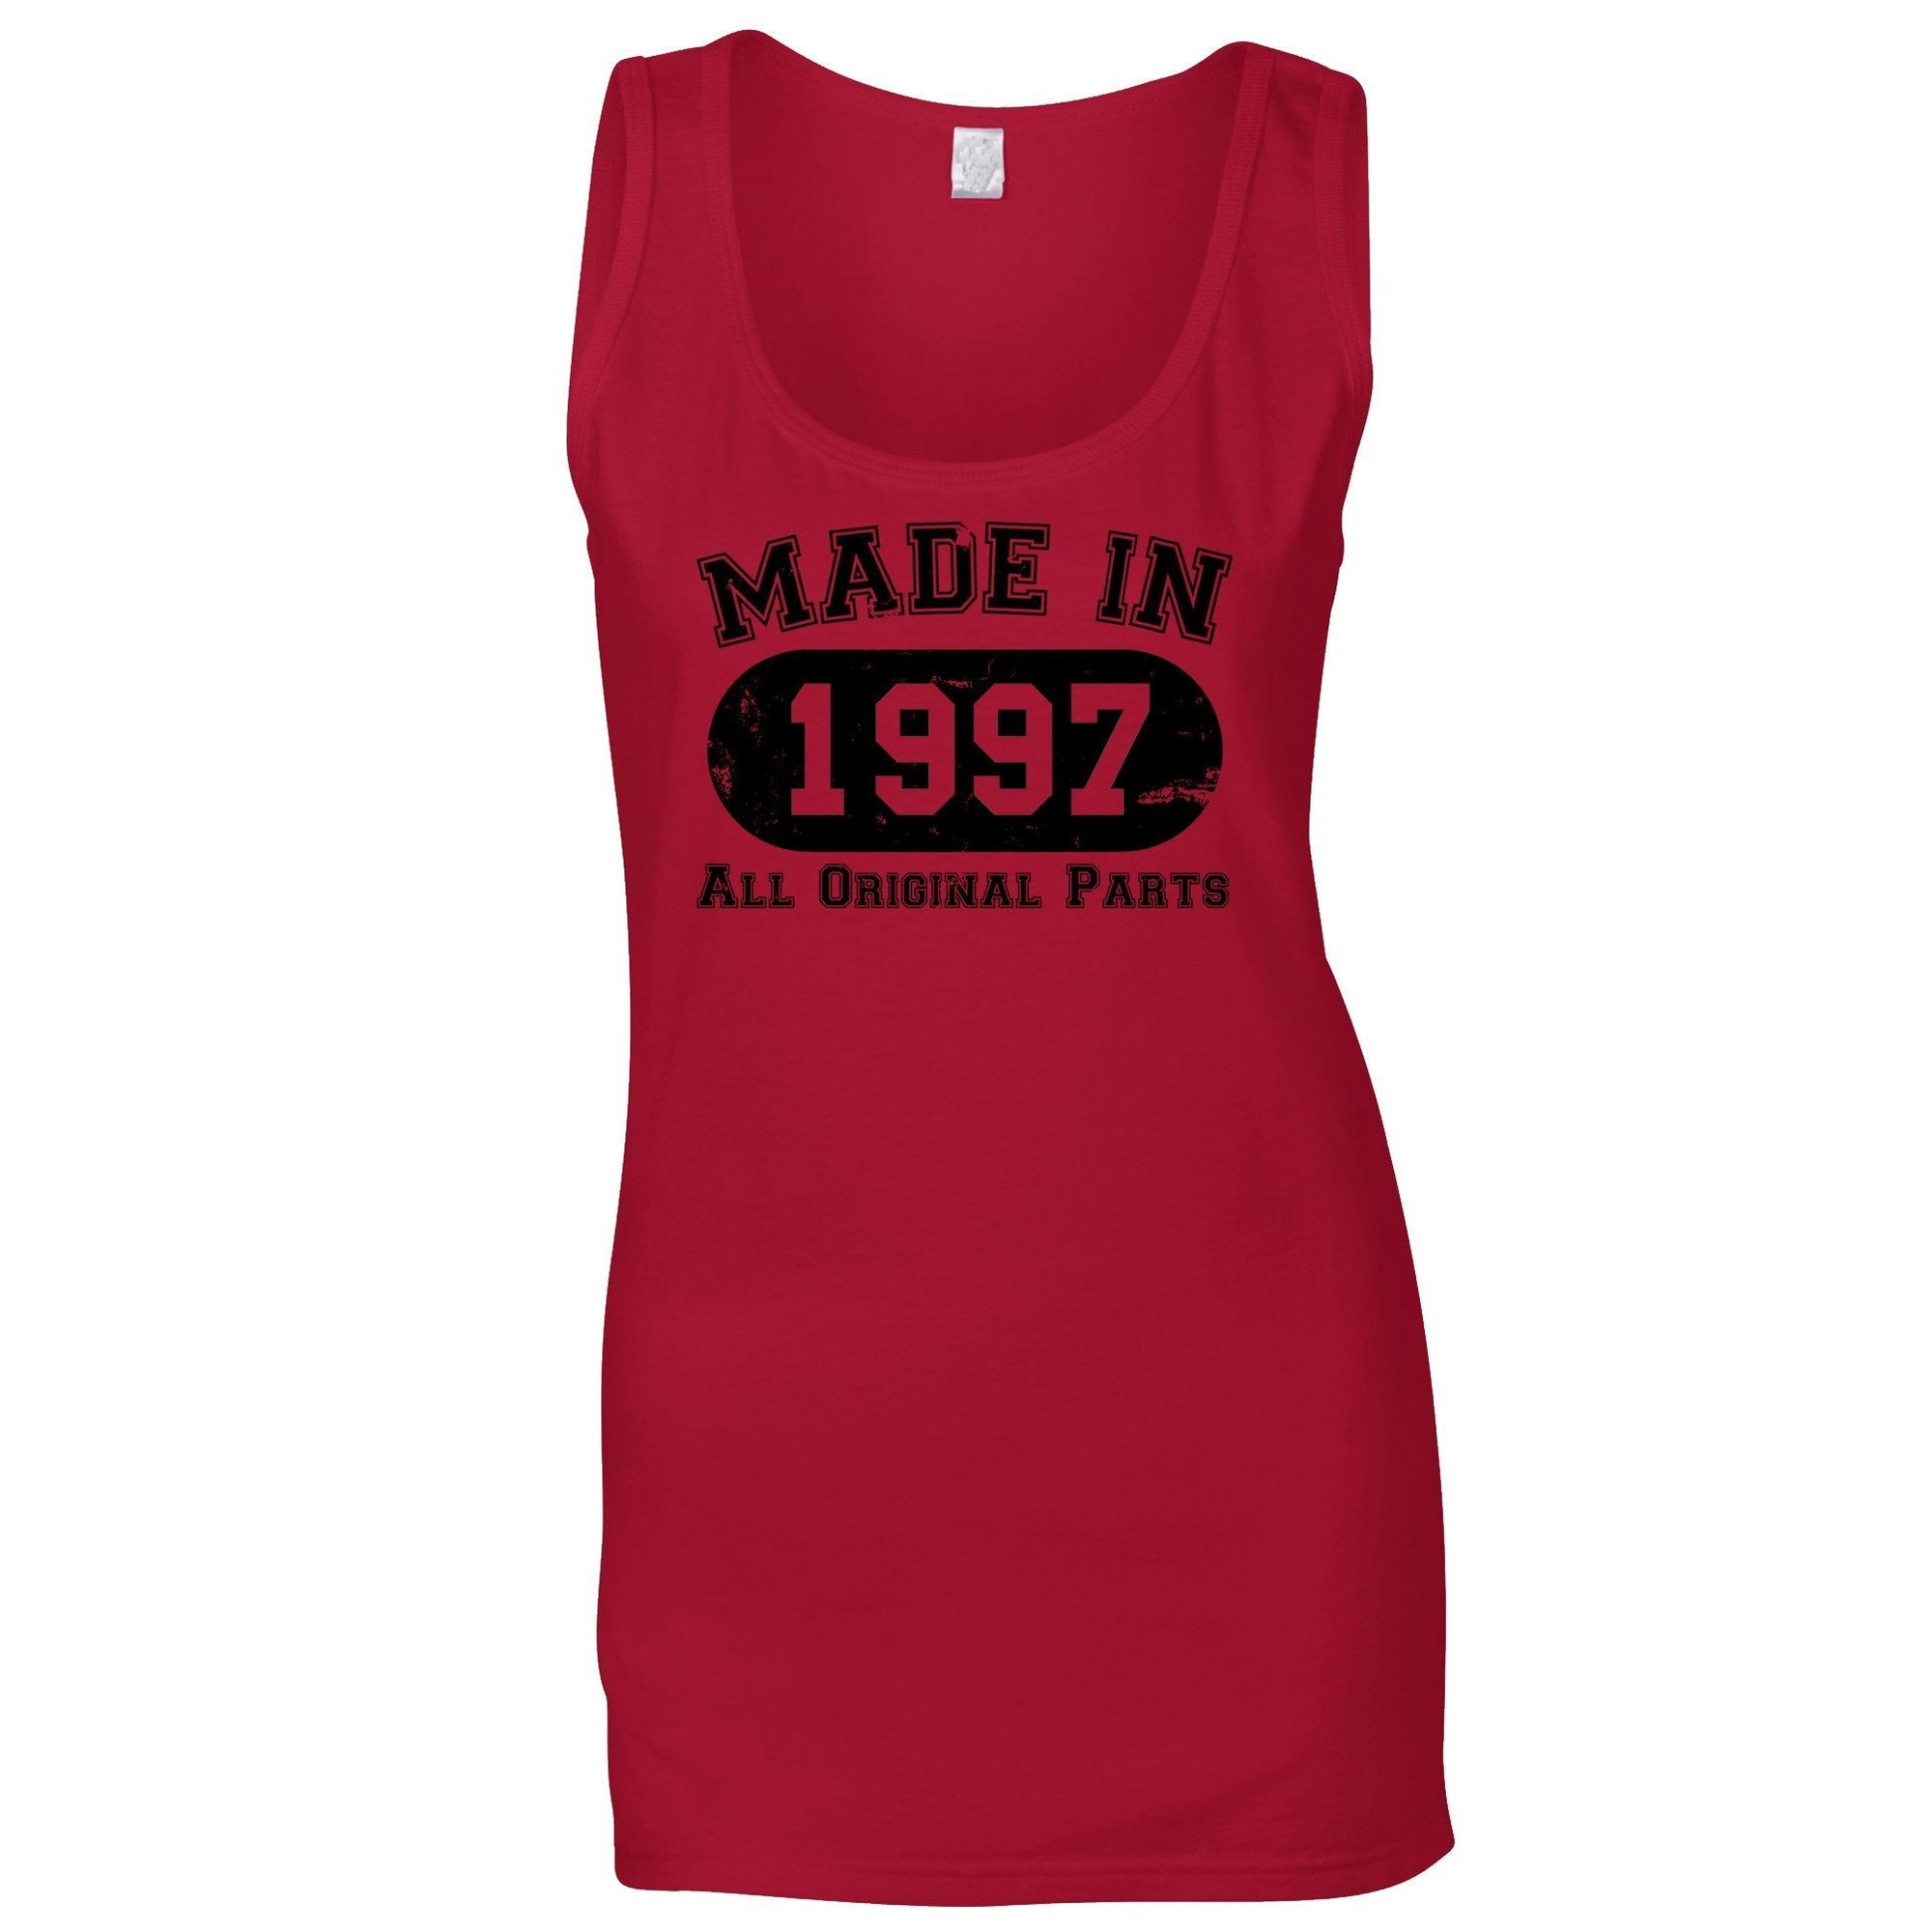 Made in 1997 All Original Parts Womens Vest [Distressed]